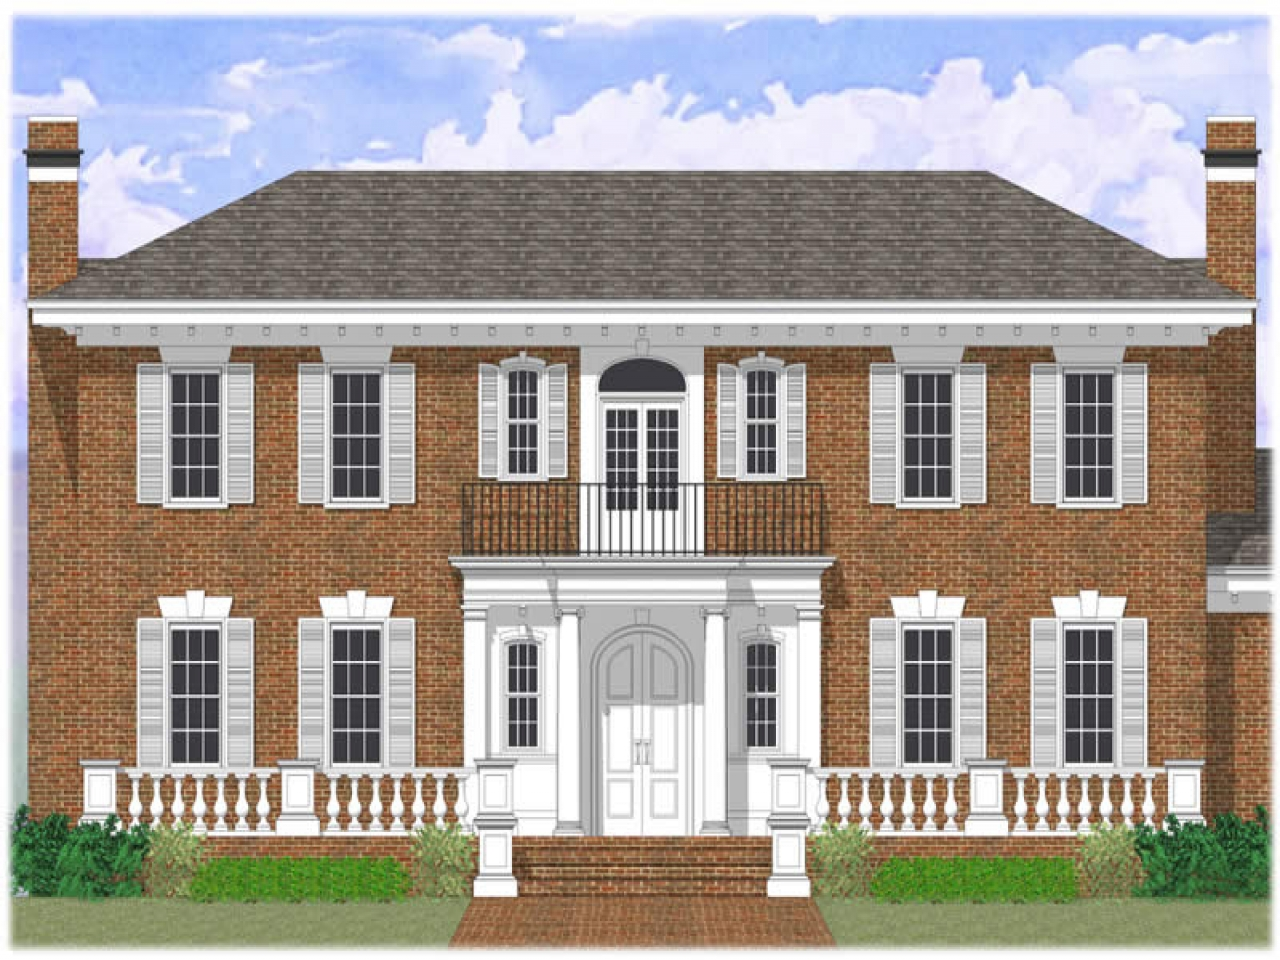 Colonial revival house plans brick colonial revival house for Brick colonial house plans